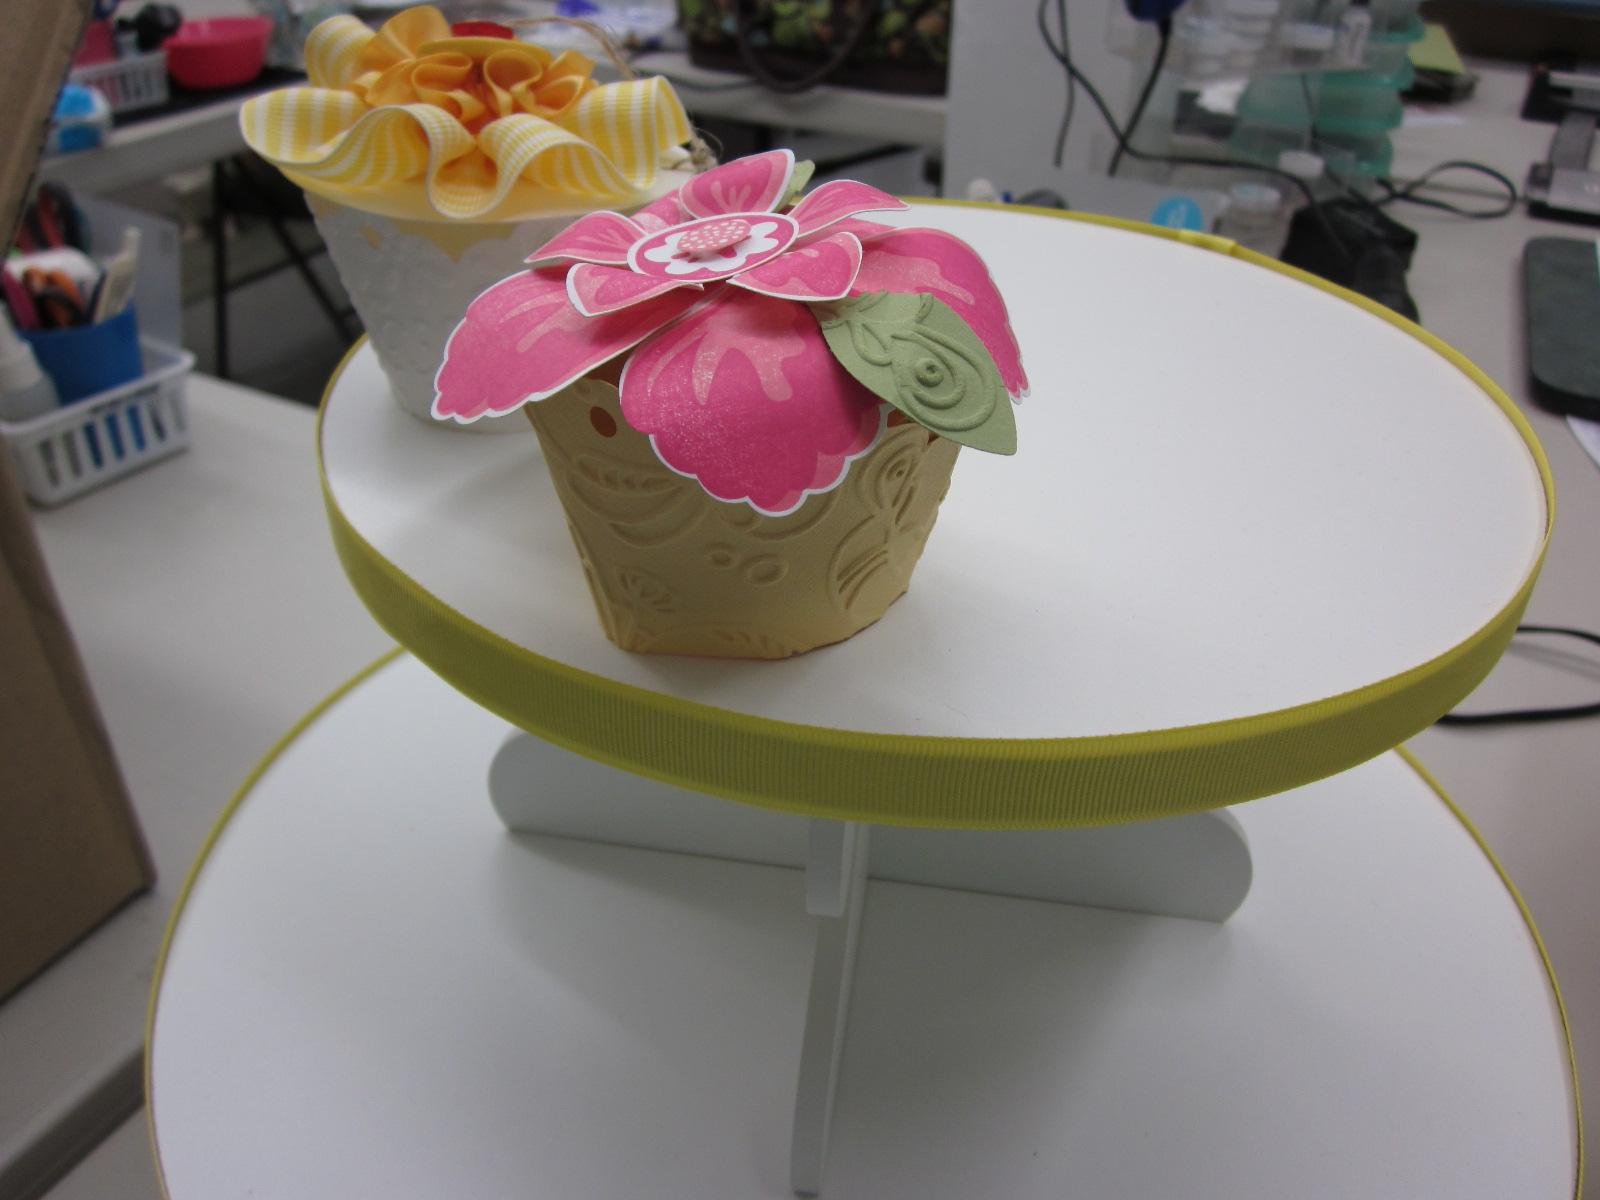 Check out my new cupcake stand